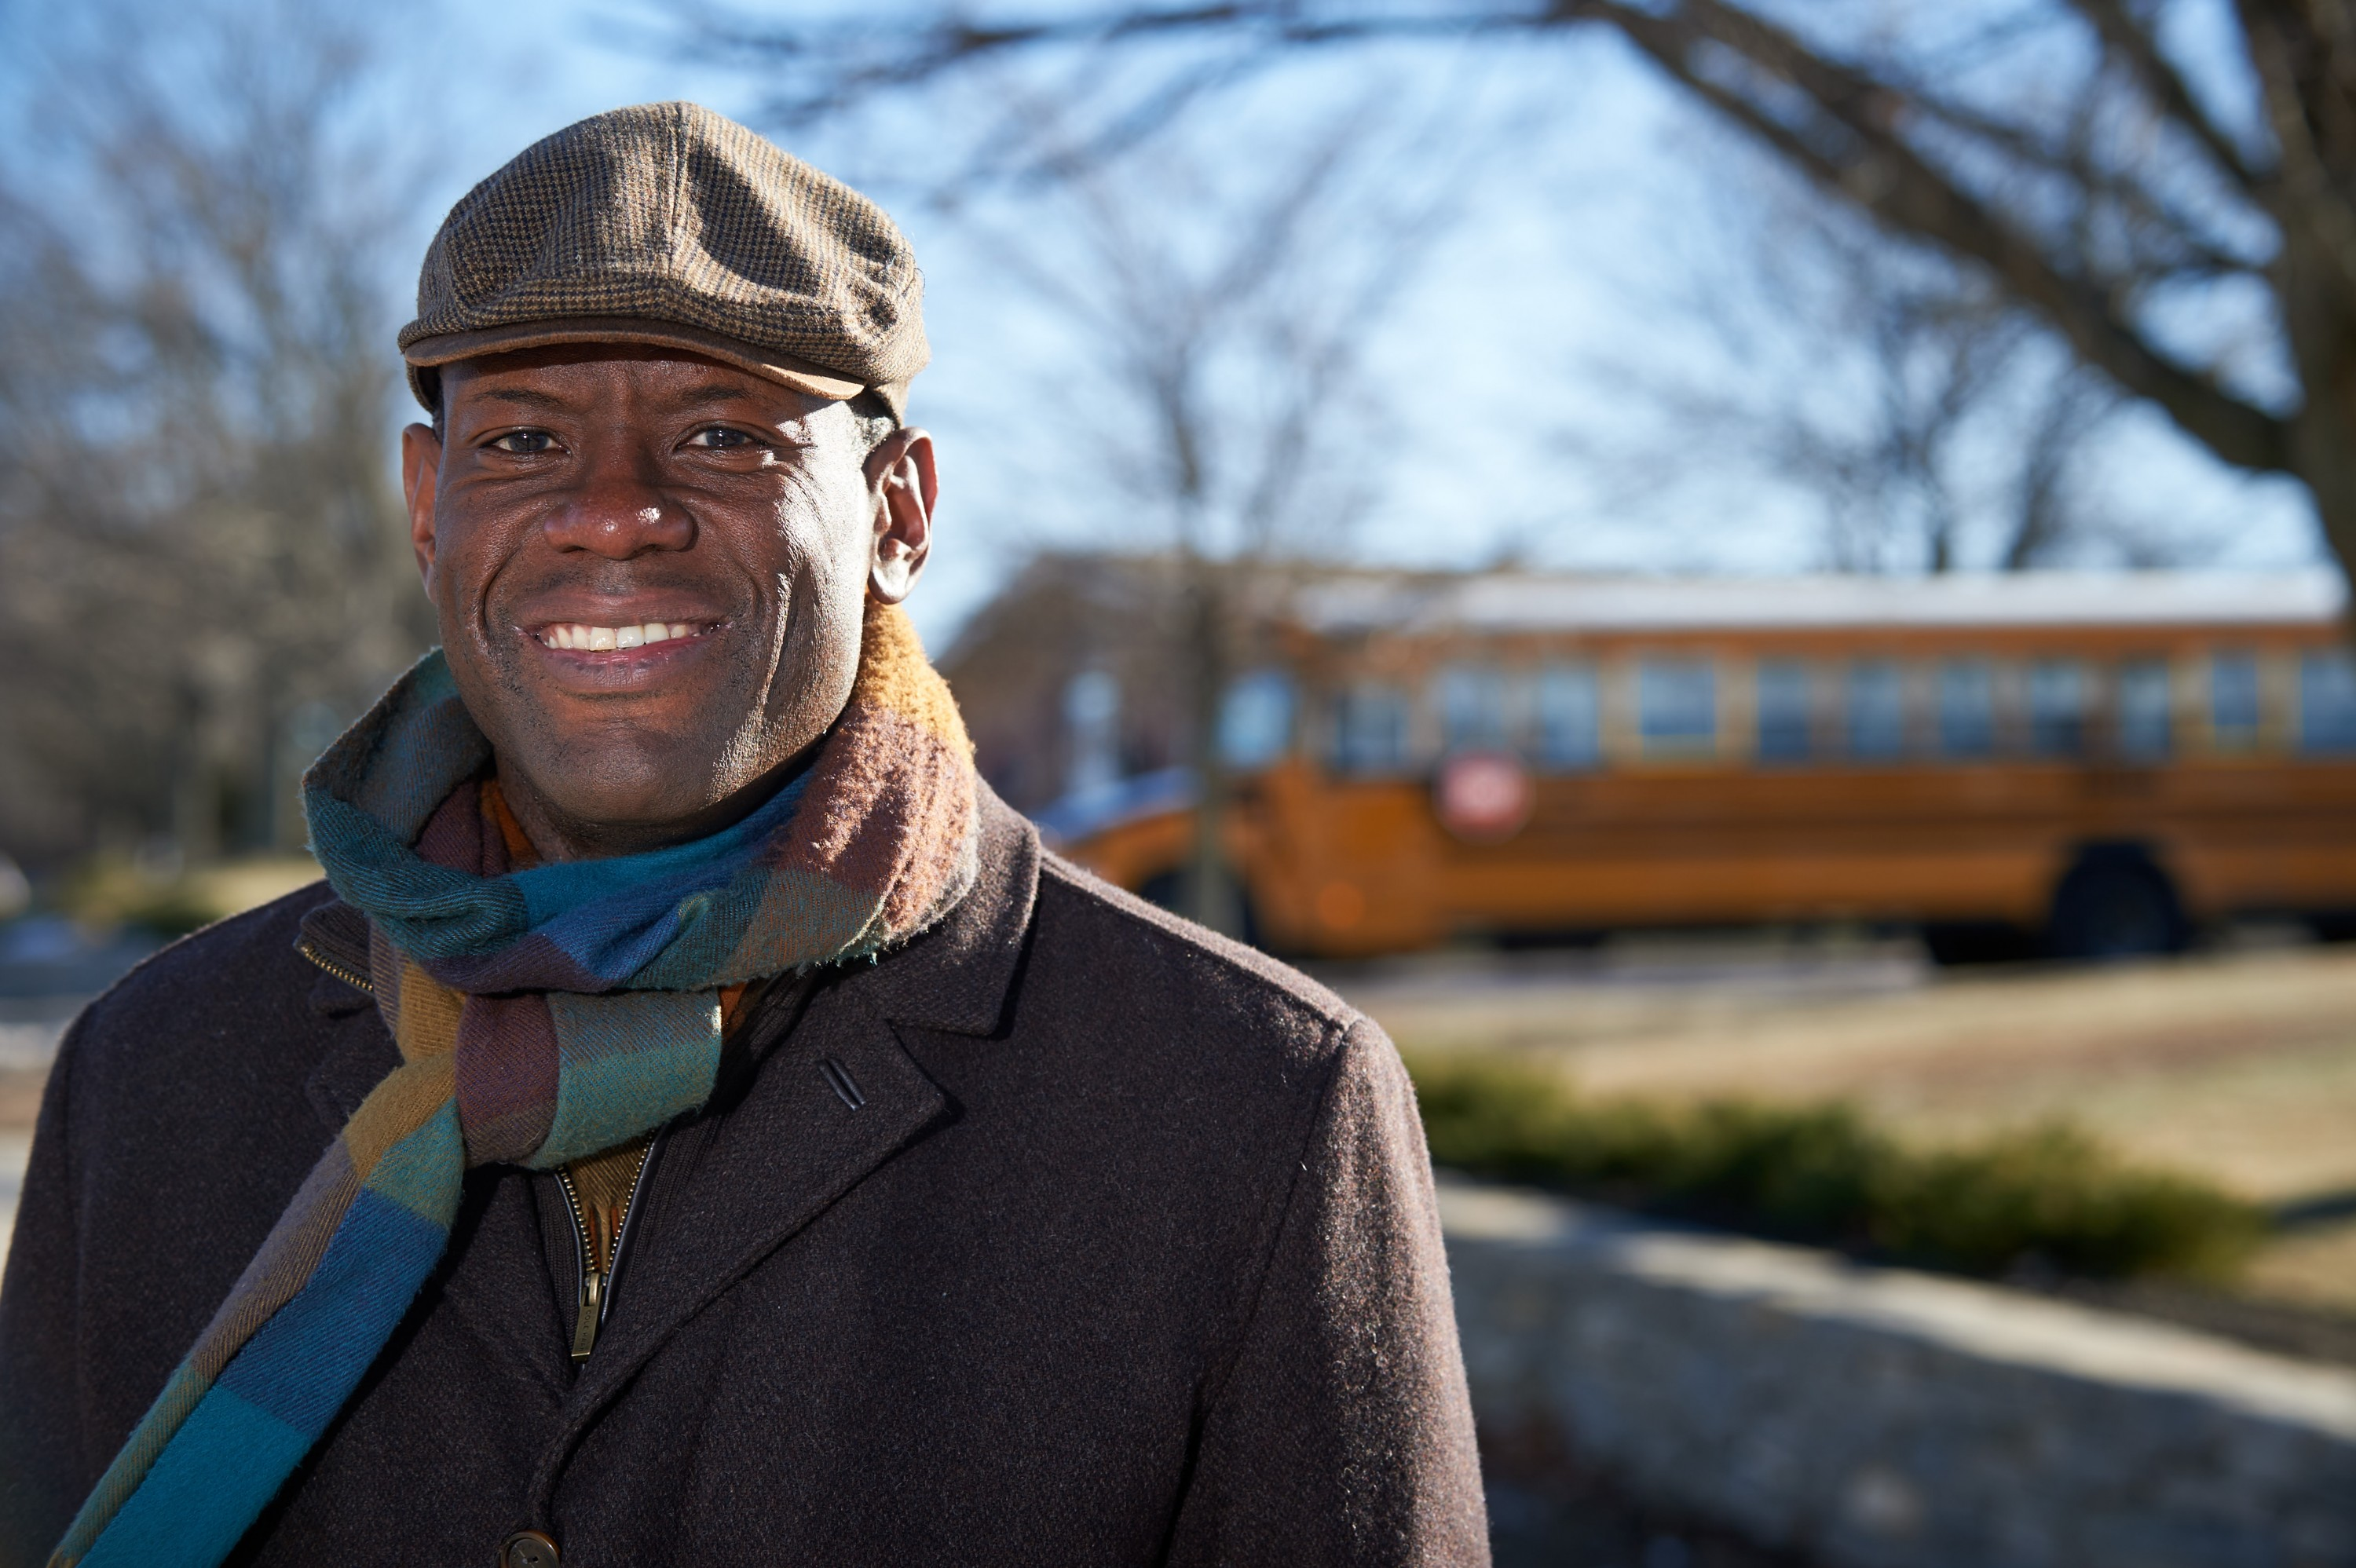 Preston Green, professor of educational leadership, stands near a school on Jan. 21, 2016. (Peter Morenus/UConn Photo)